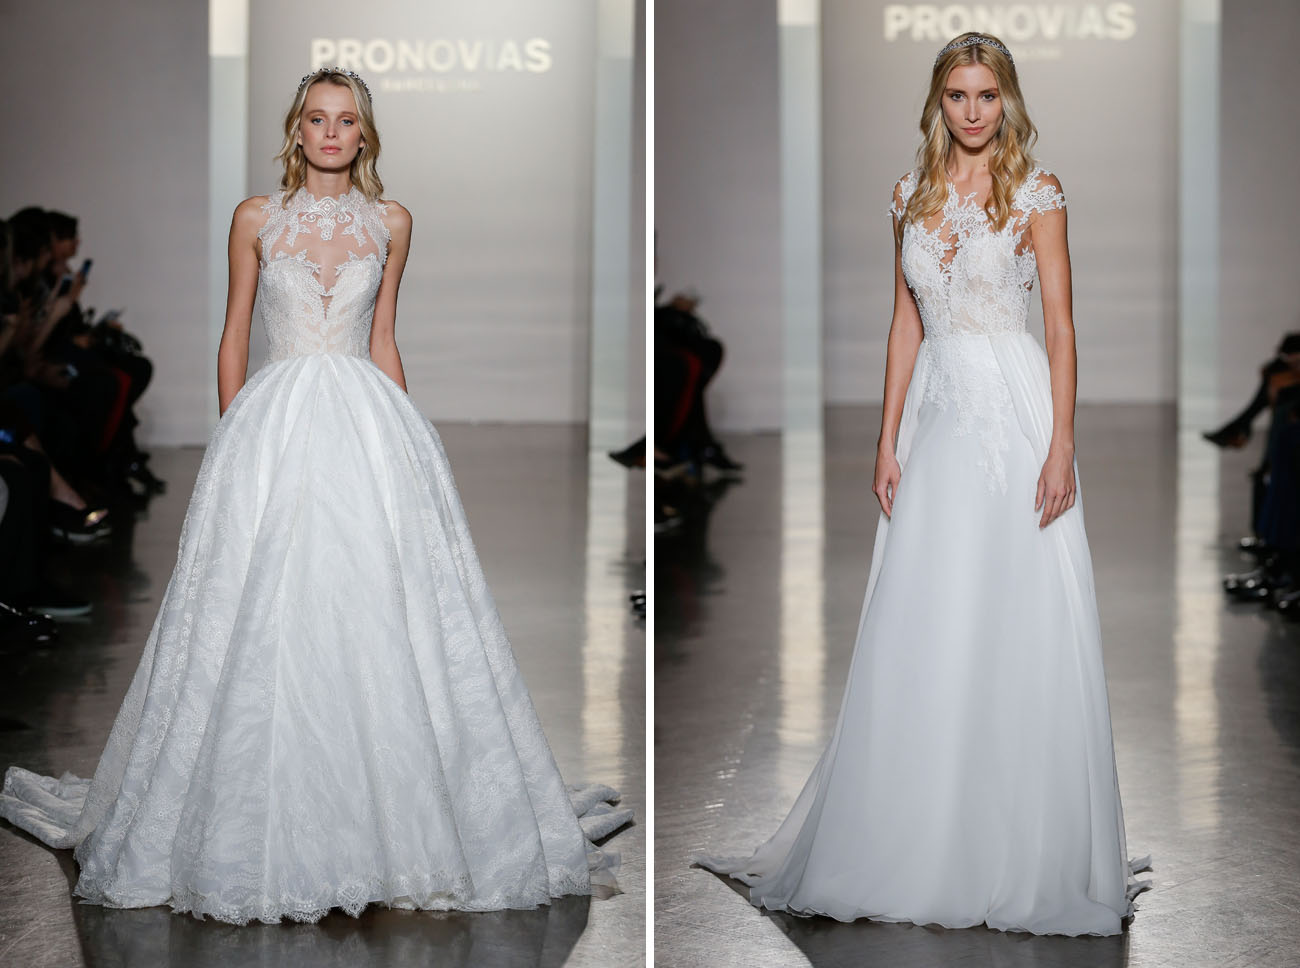 Wedding dresses on   nyc : The atelier pronovias collection from new york bridal